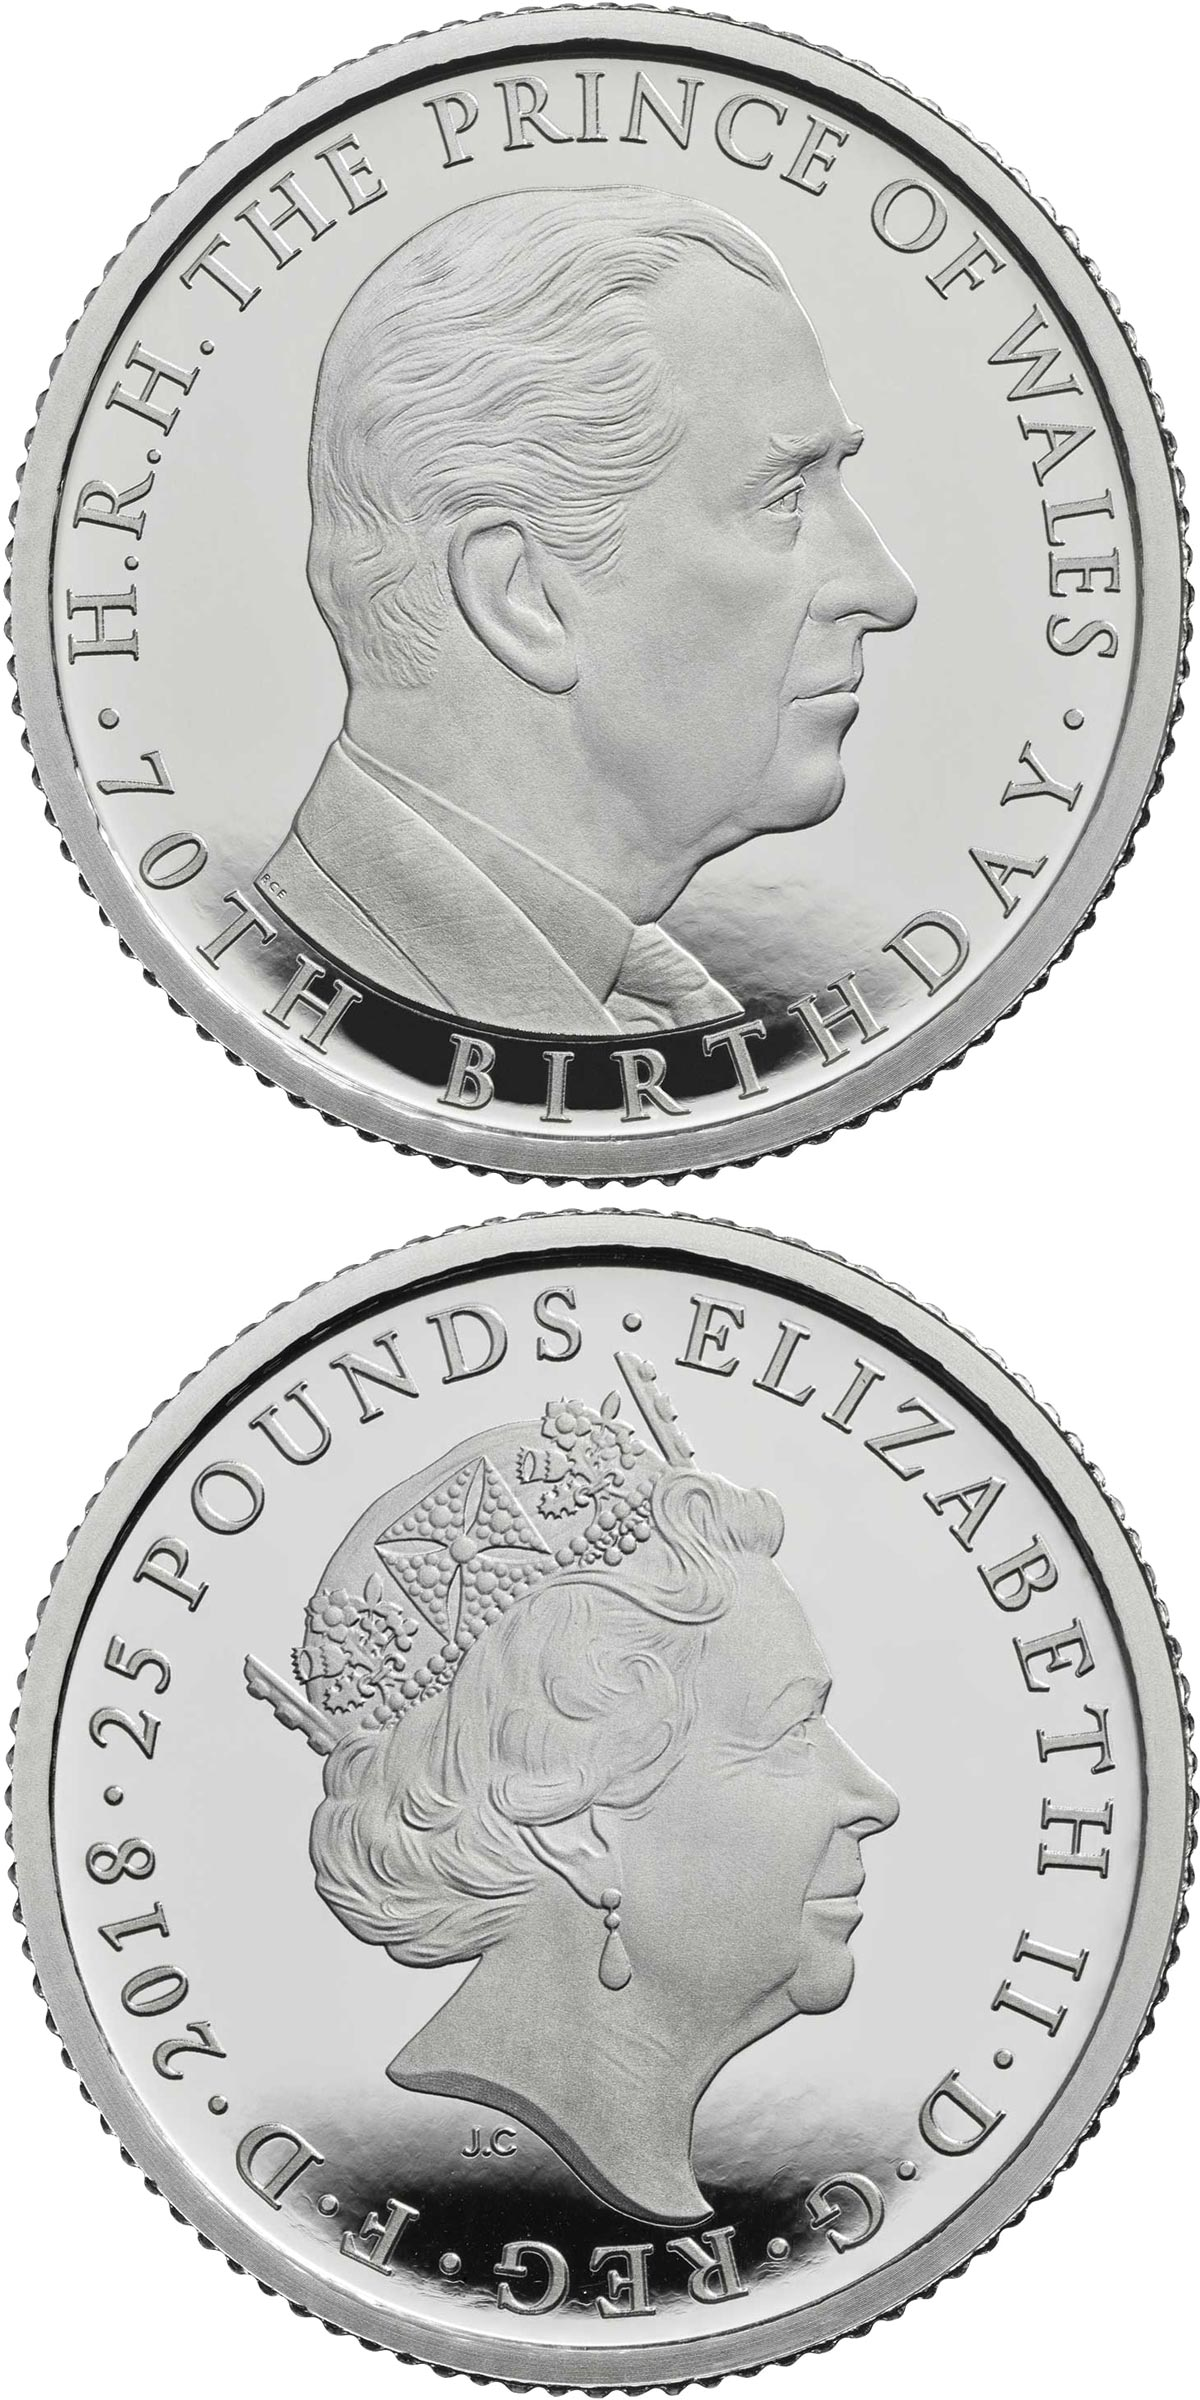 Image of 25 pounds coin - The 70th Birthday of the Prince of Wales | United Kingdom 2018.  The Platinum coin is of Proof quality.